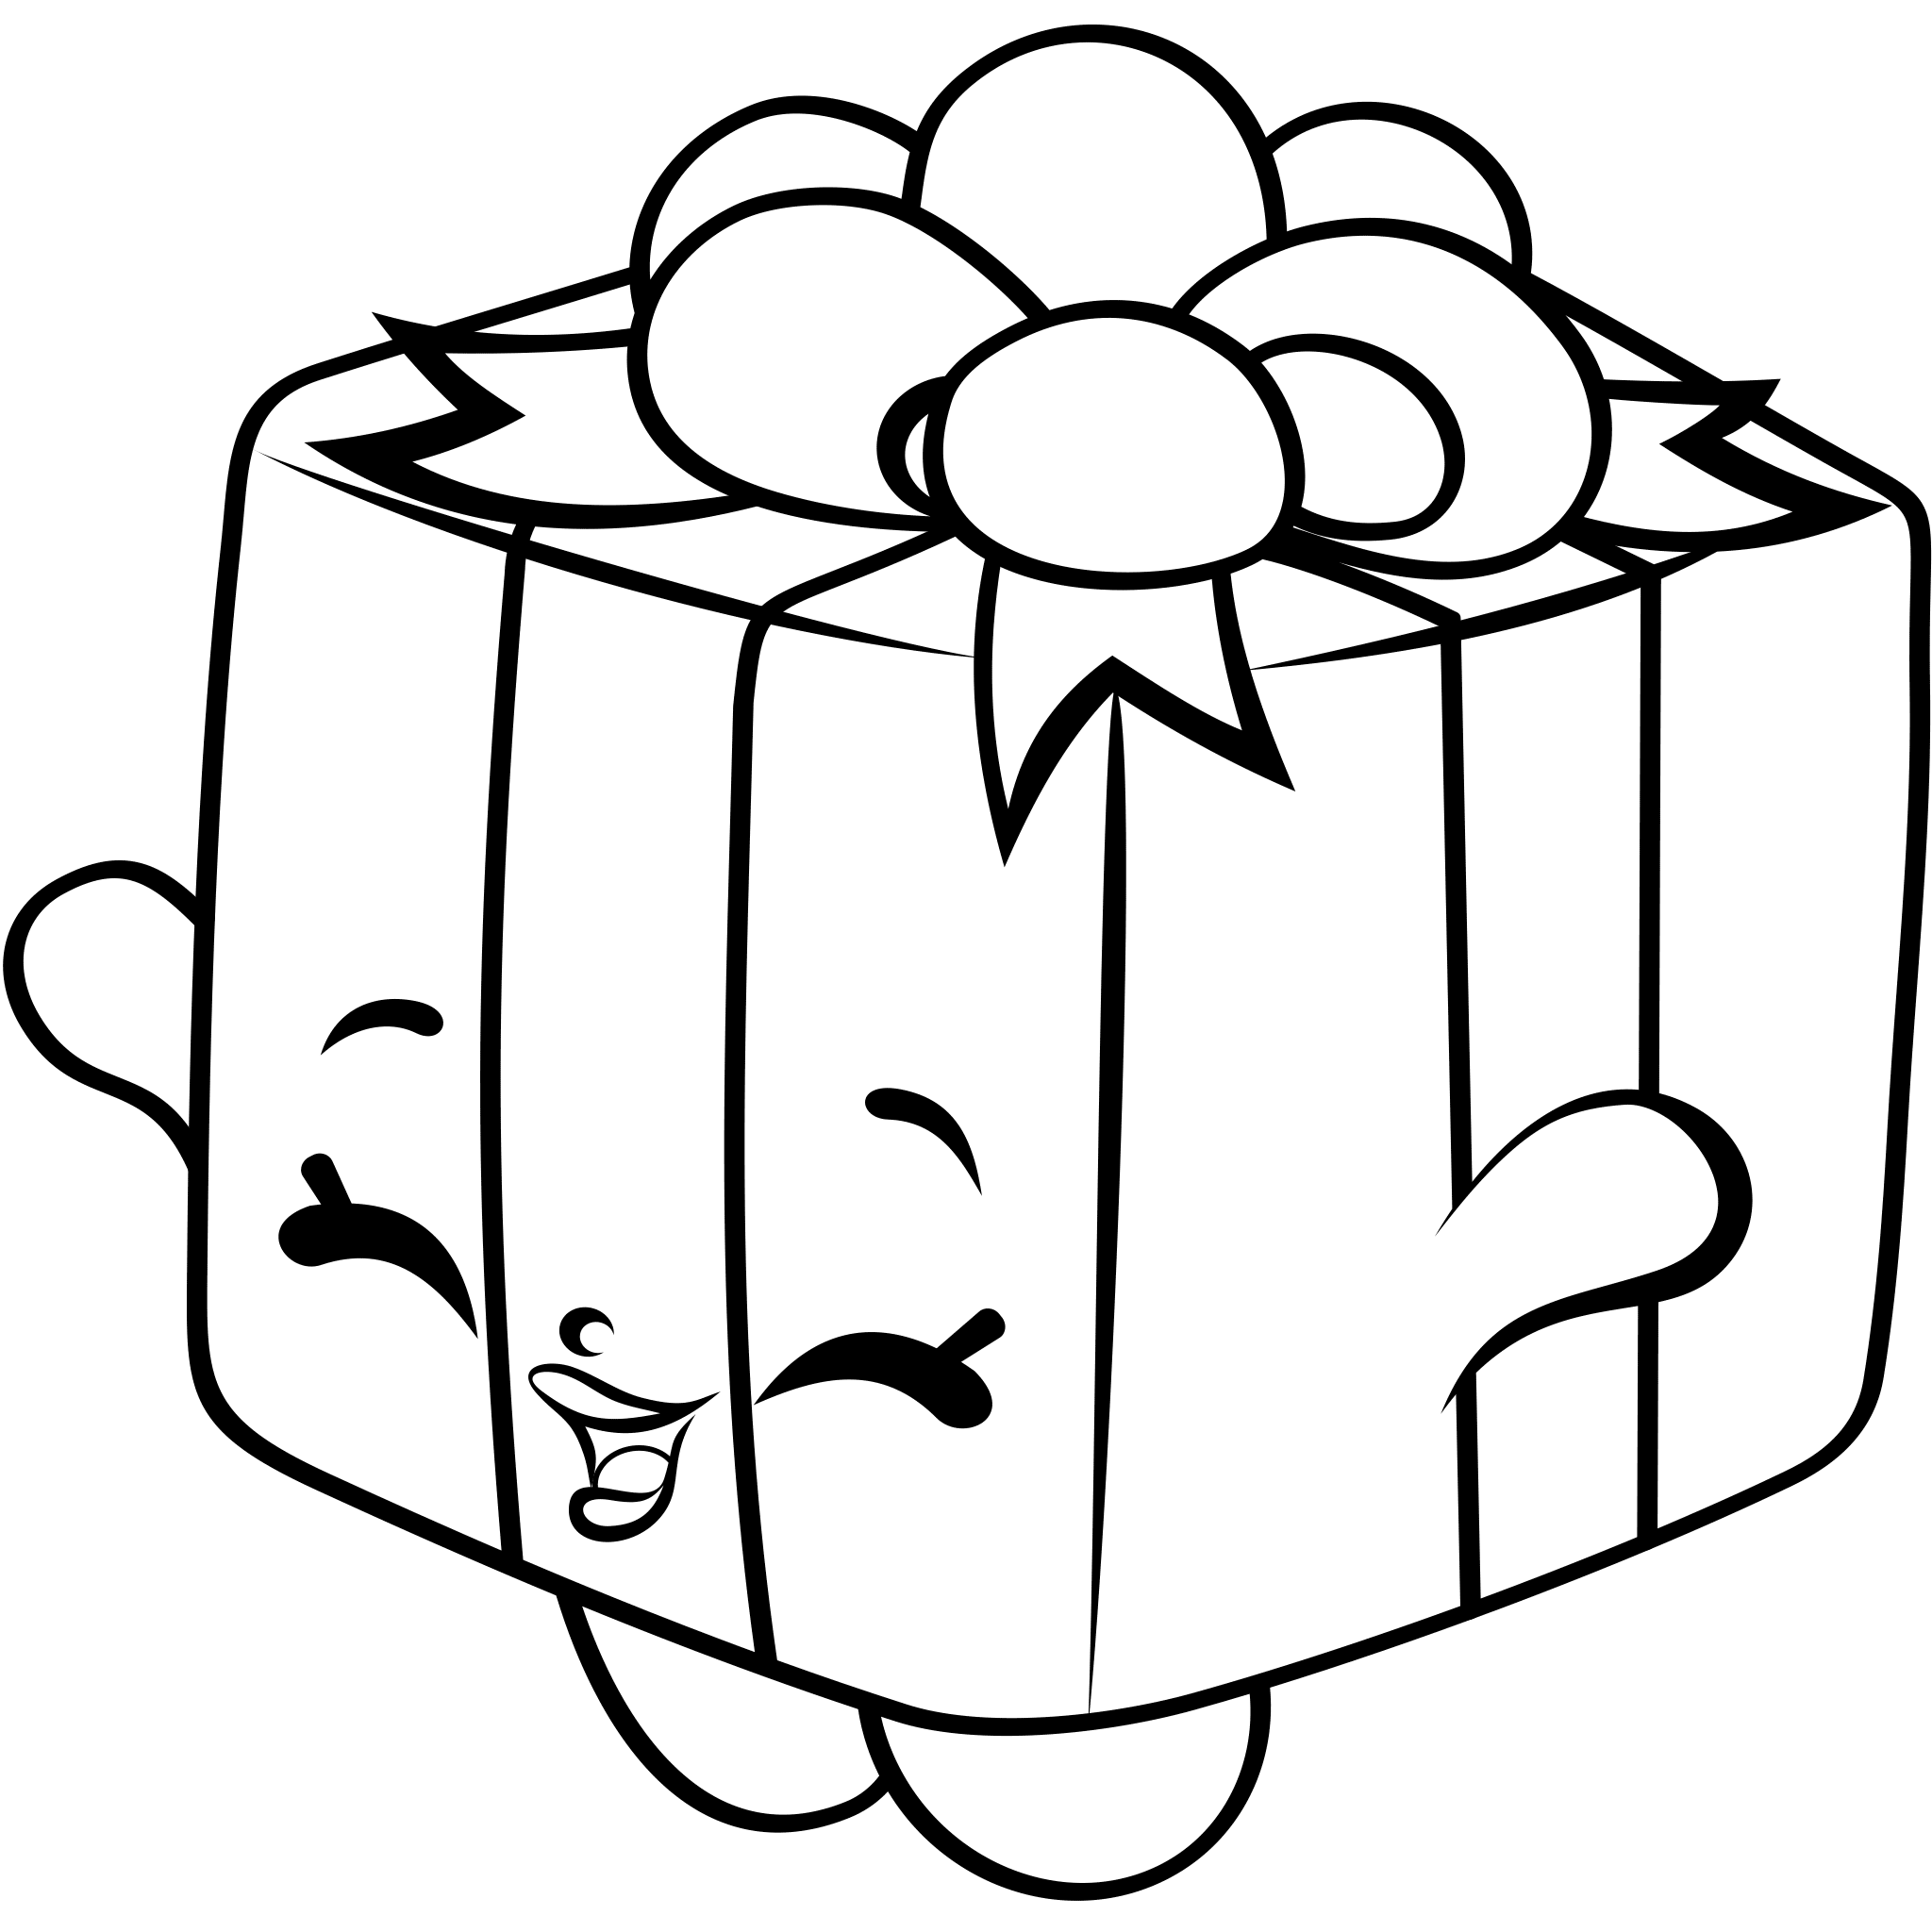 Shopkins Coloring Pages Best Coloring Pages For Kids Coloring Printing Pages